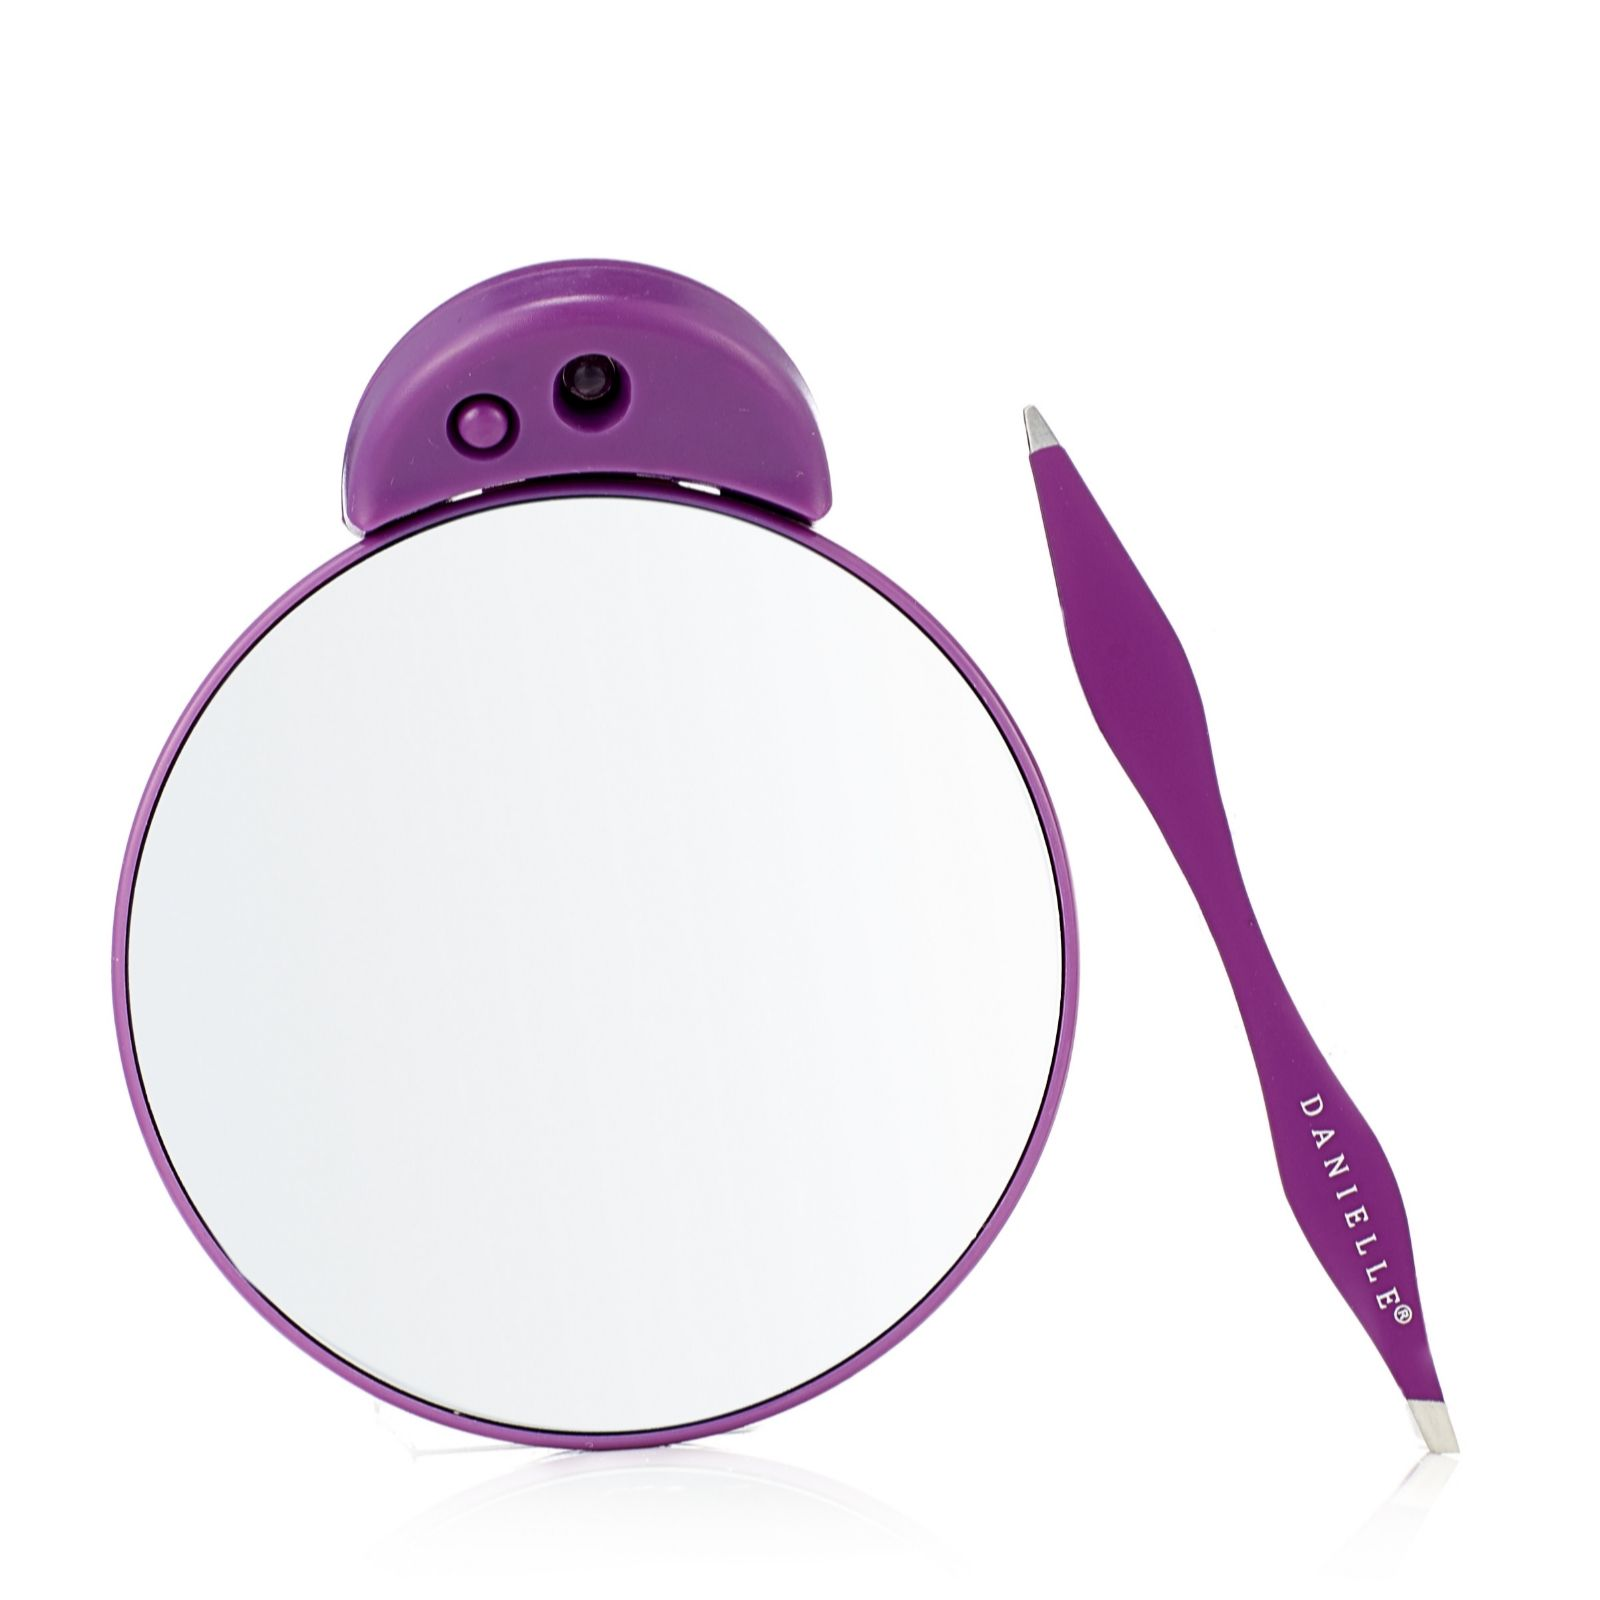 Danielle Creations Dual Tip Tweezer Led Compact Mirror Qvc Uk